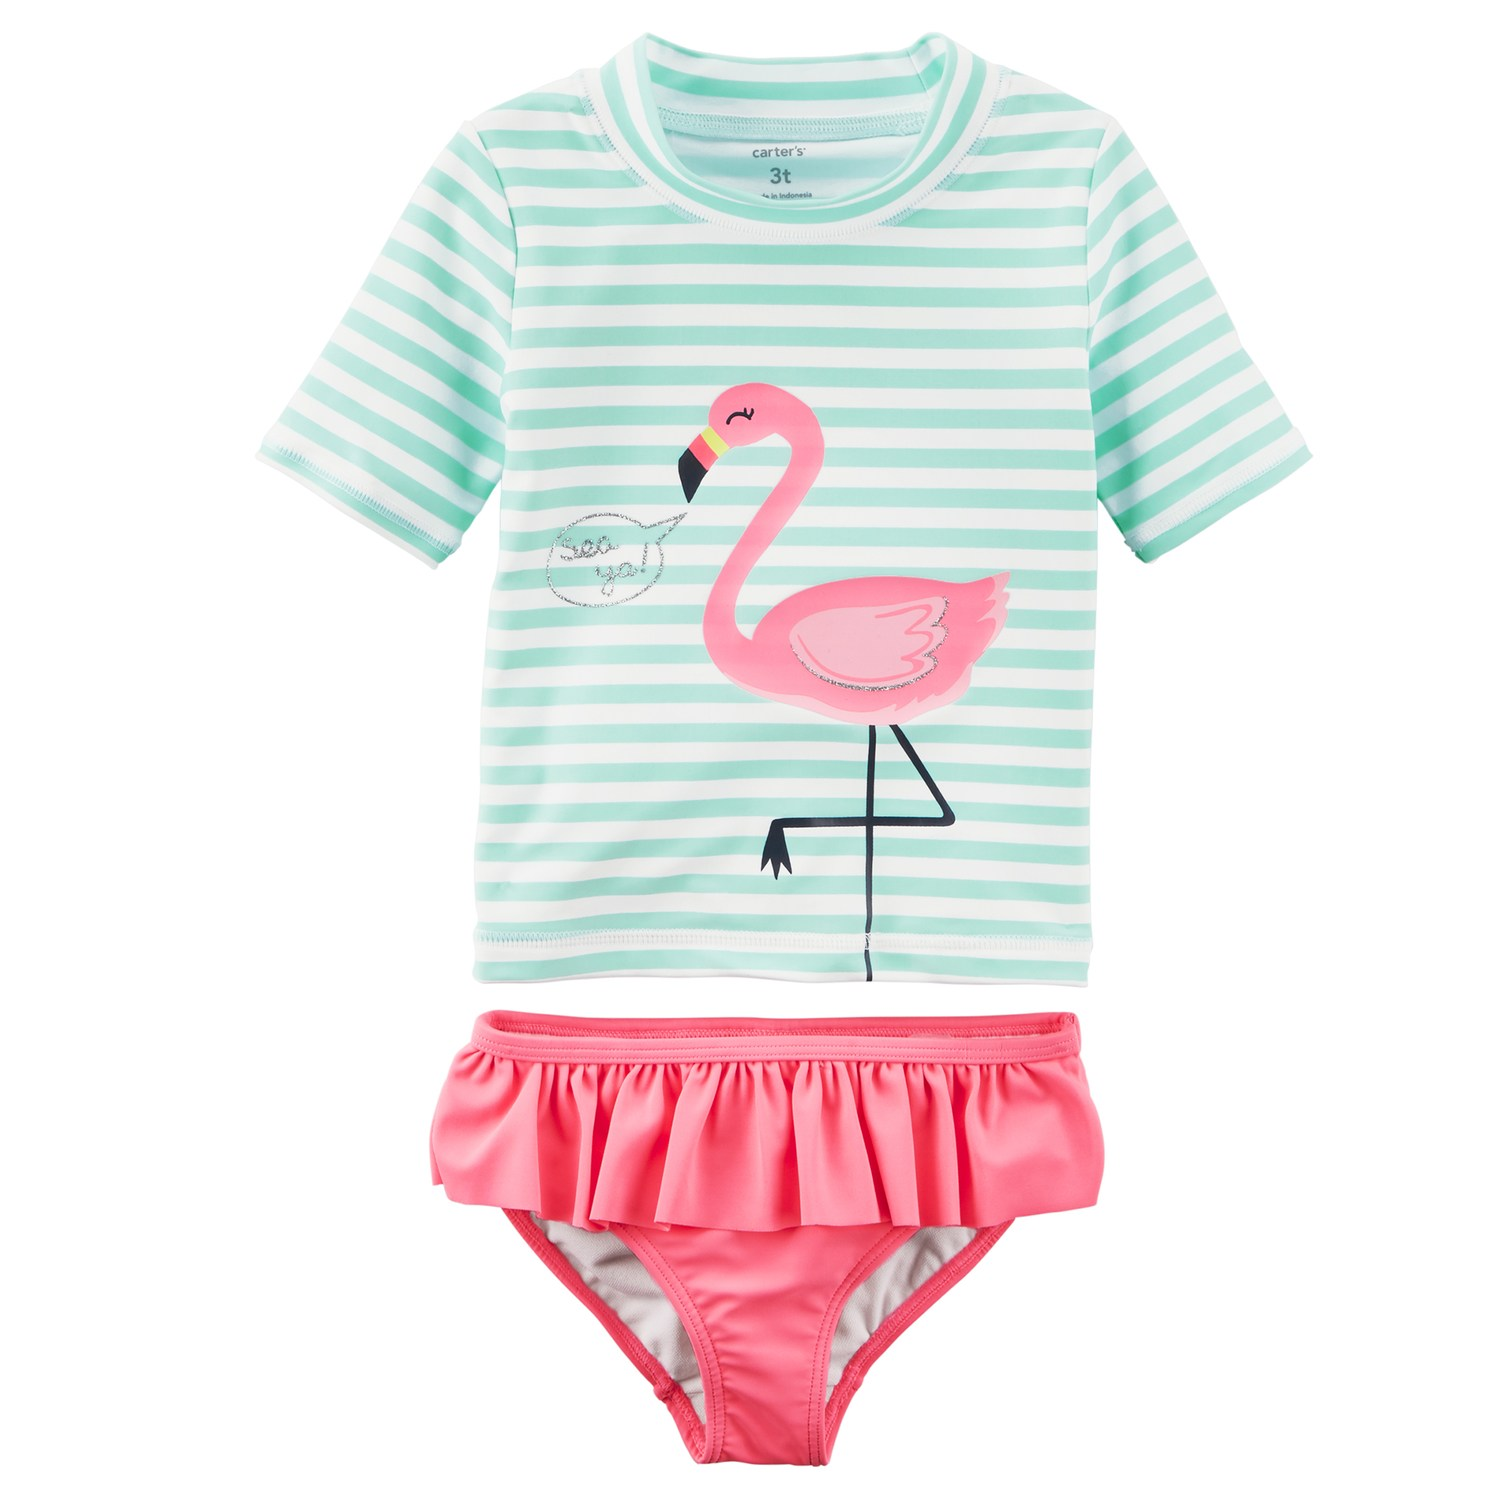 baby girl swimsuits baby girl carteru0027s flamingo rashguard u0026 ruffled bottoms swimsuit set WNVTQFU